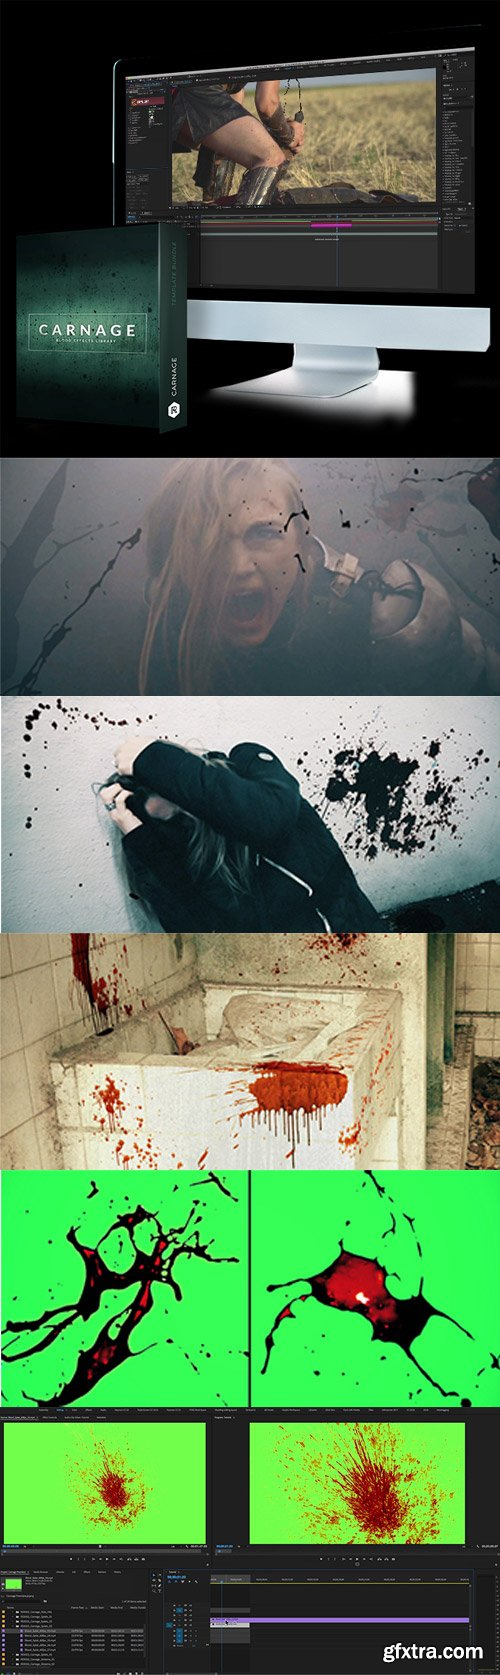 RocketStock - Carnage: 296 Blood Video Effects for Gory & Horror Scenes